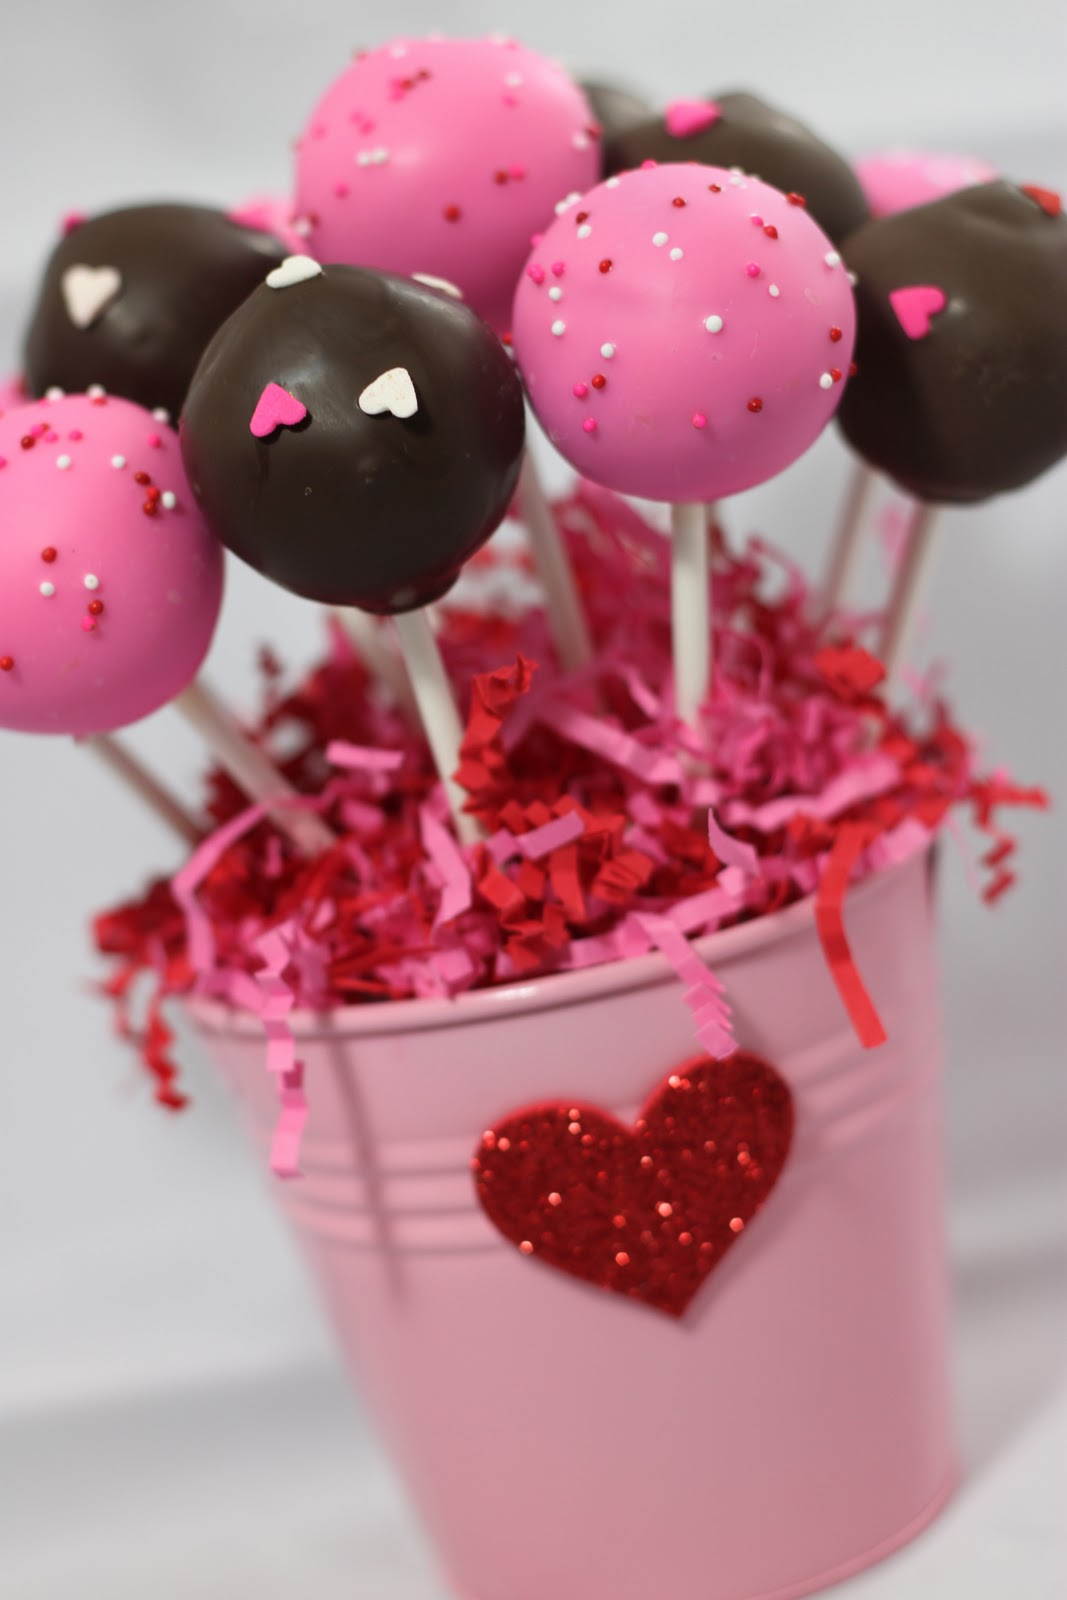 Inspiraci n cake pops de san valent n whole kitchen for Cake pops cobertura